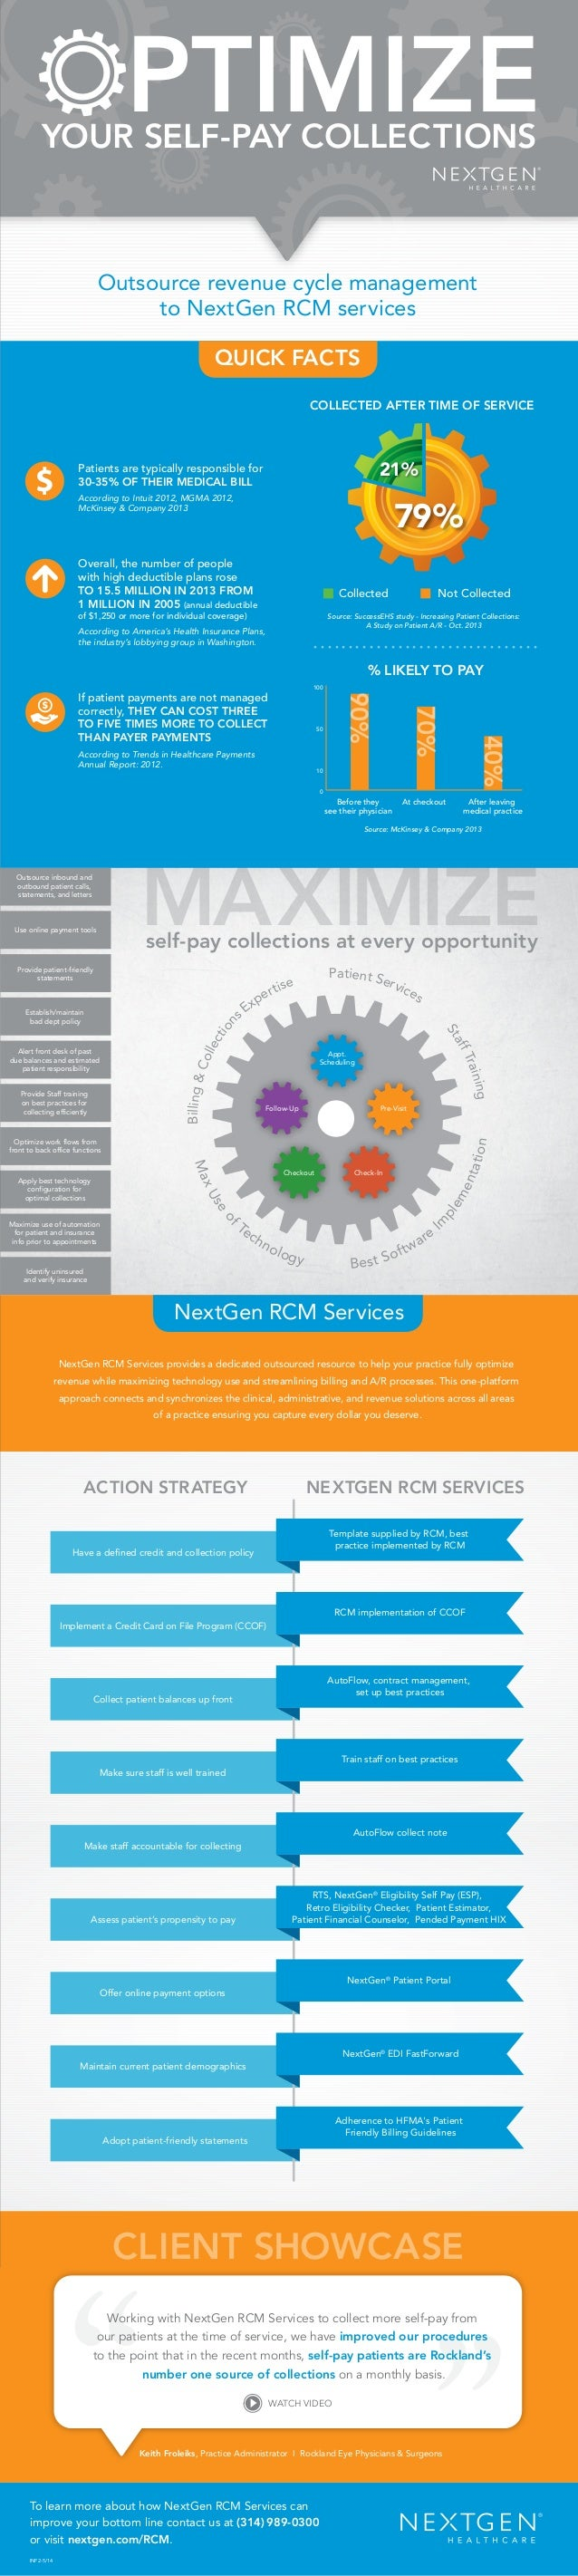 To learn more about how NextGen RCM Services can improve your bottom line contact us at (314) 989-0300 or visit nextgen.co...